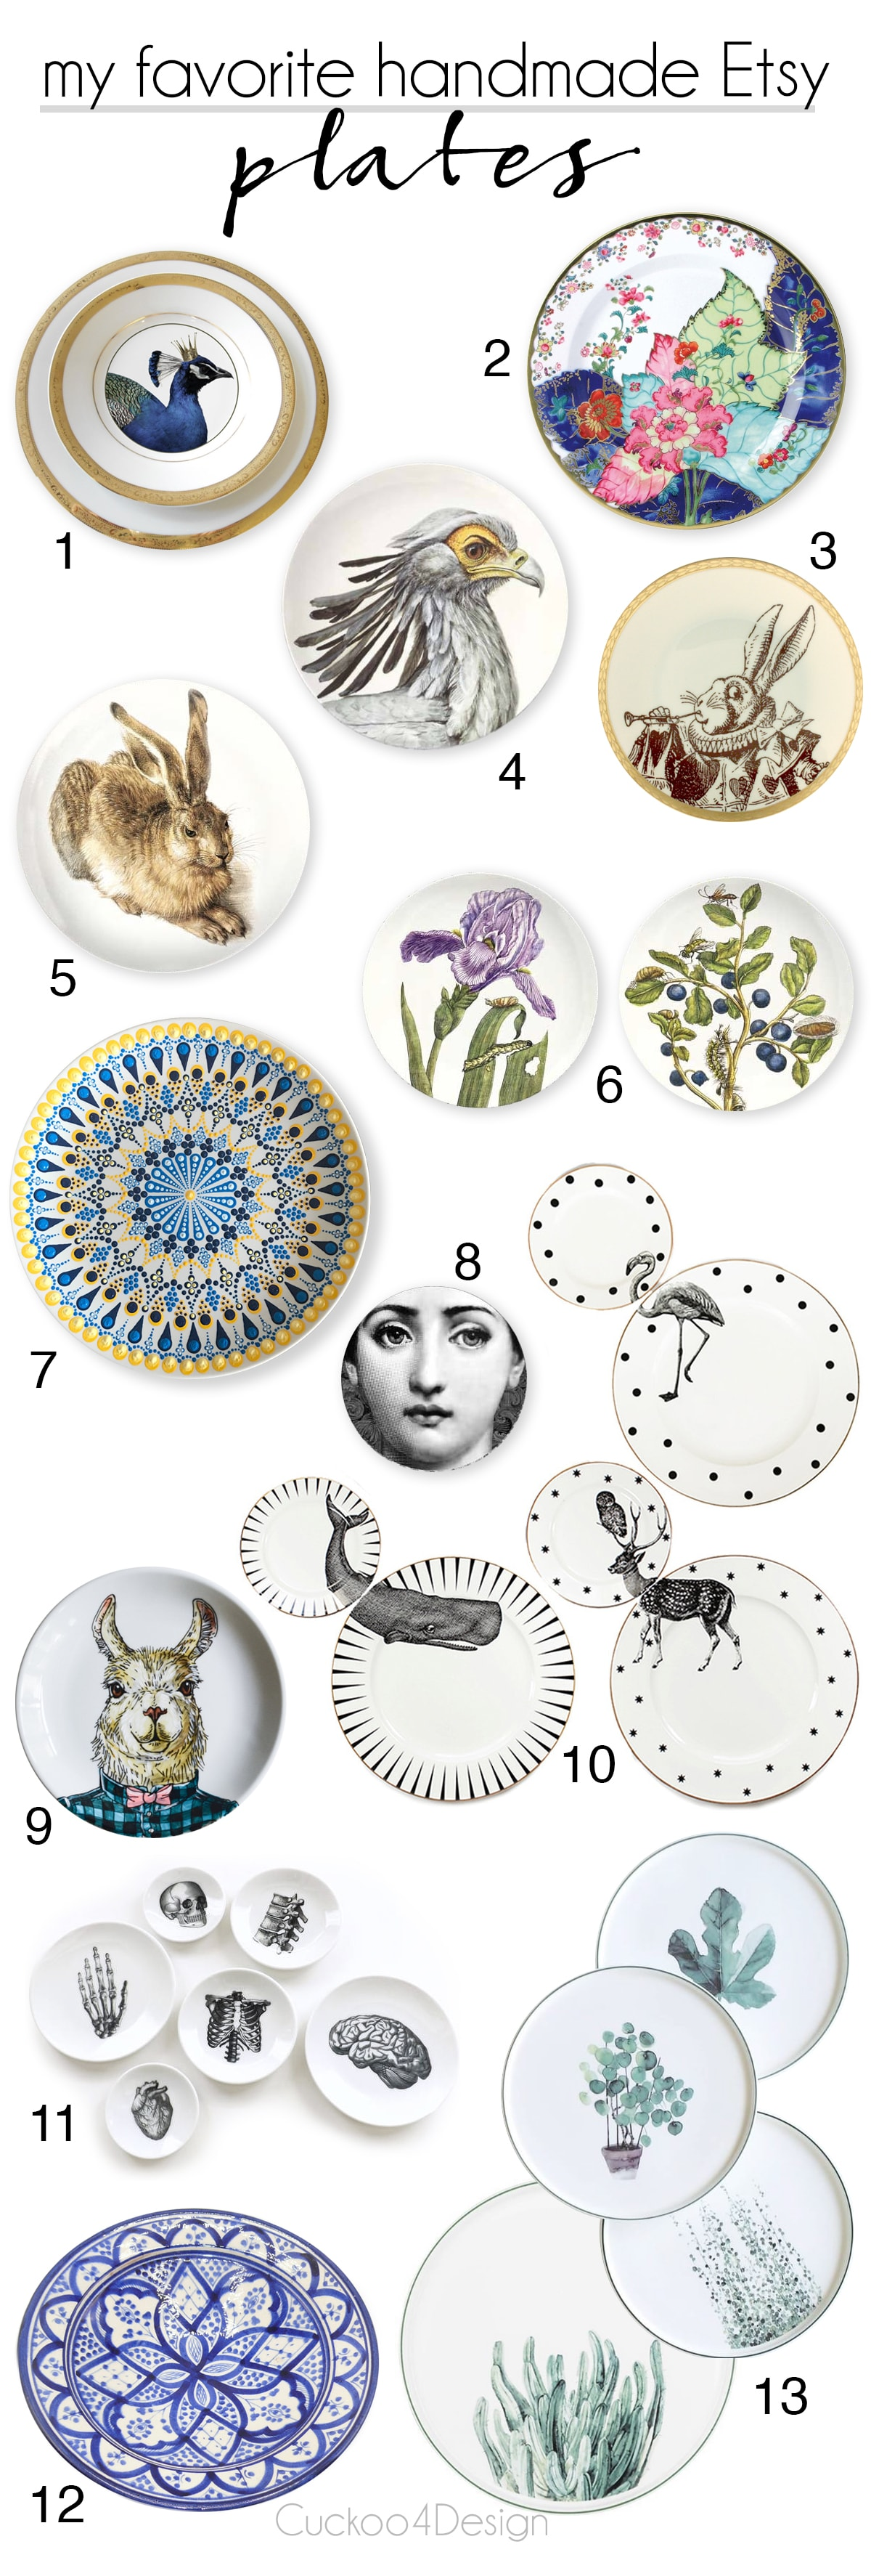 my favorite handmade plates on Etsy | plate gallery wall | handmade plates | botanical plates | Alice in Wonderland plates | anatomy plates | Moroccan plates | Indian plates